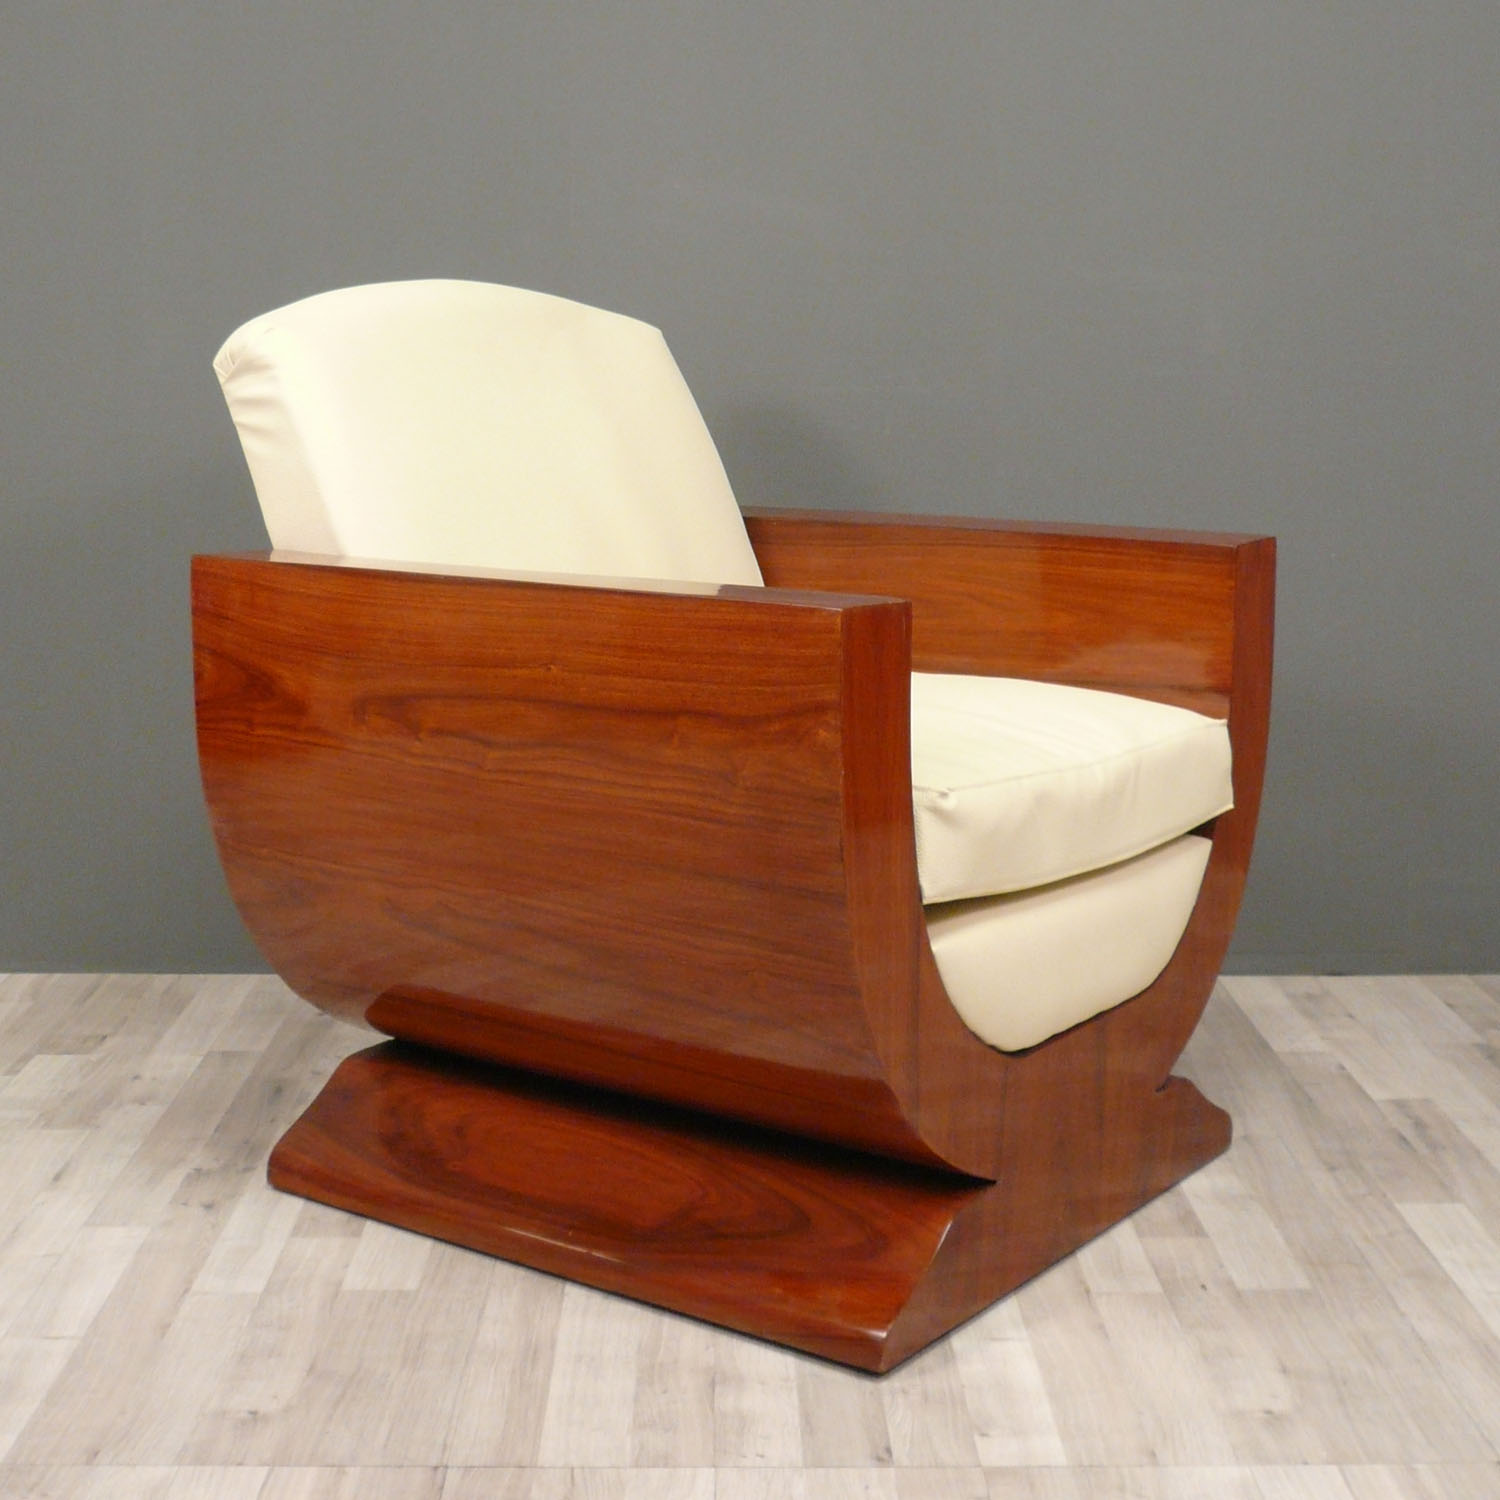 modern art deco furniture, palatially curved art deco furniture made of wood with white fabric seat as REPHIVY